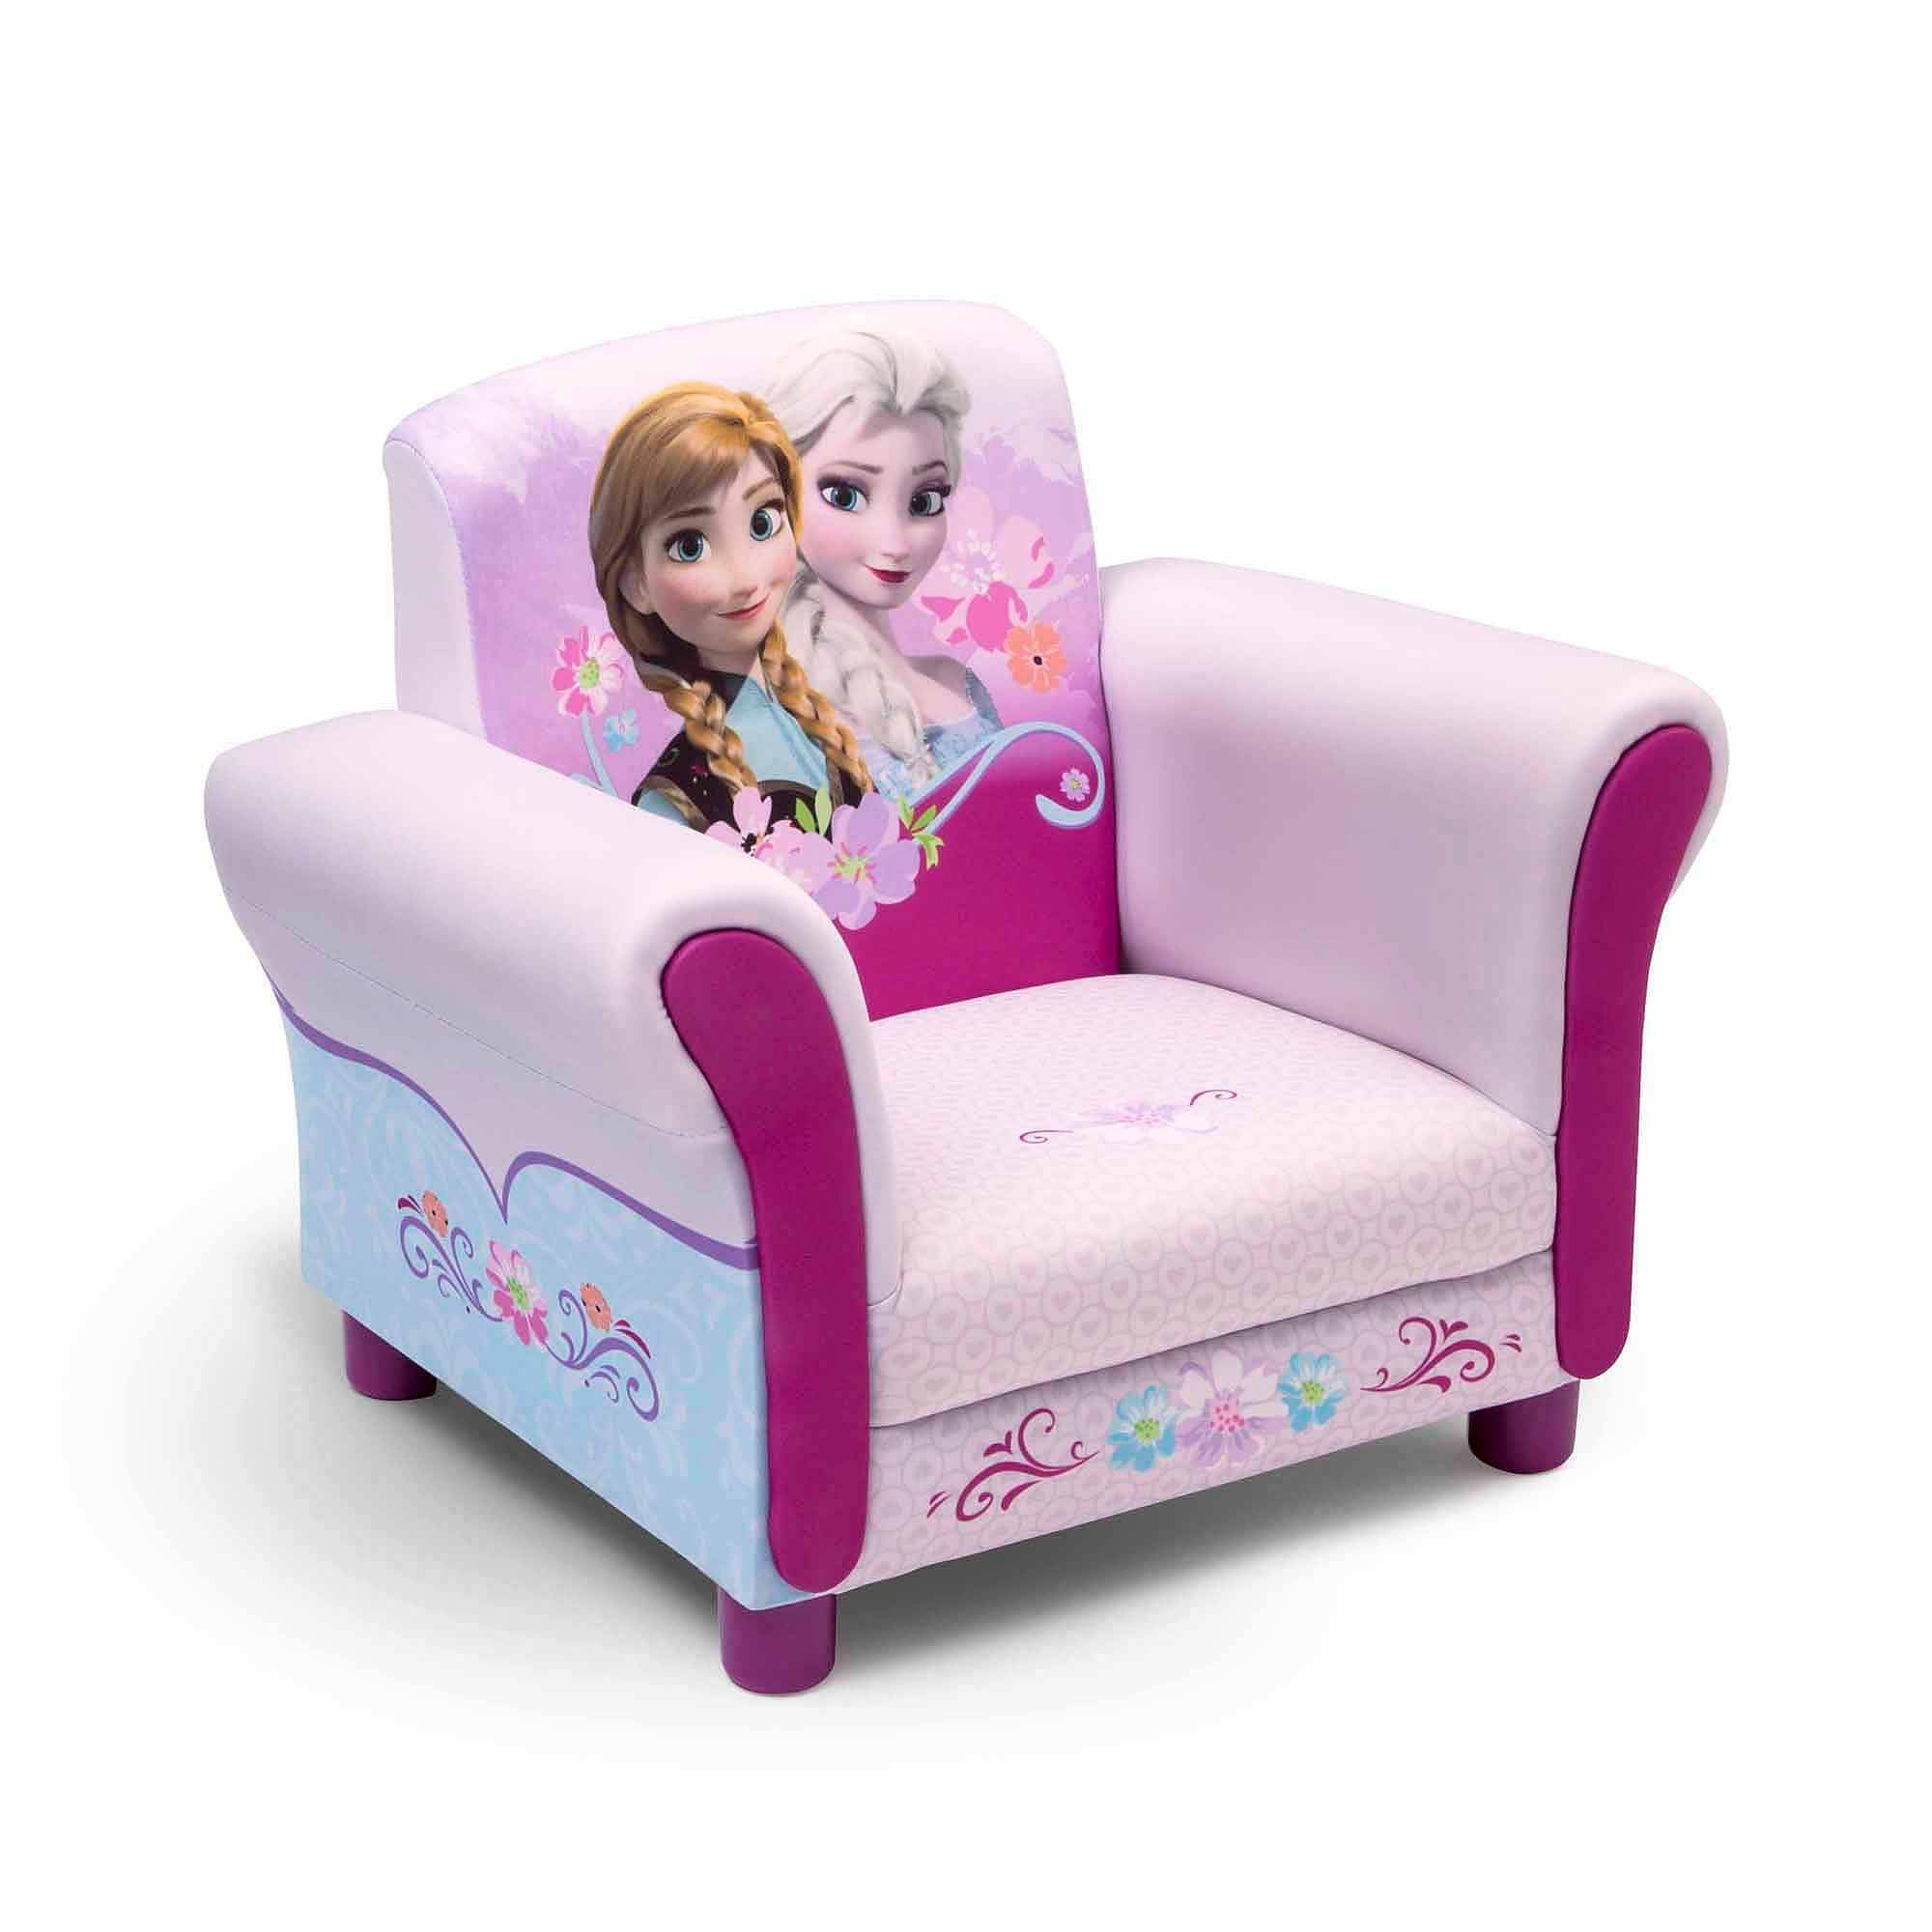 Disney Frozen Upholstered Chair - Walmart in Disney Sofa Chairs (Image 4 of 15)